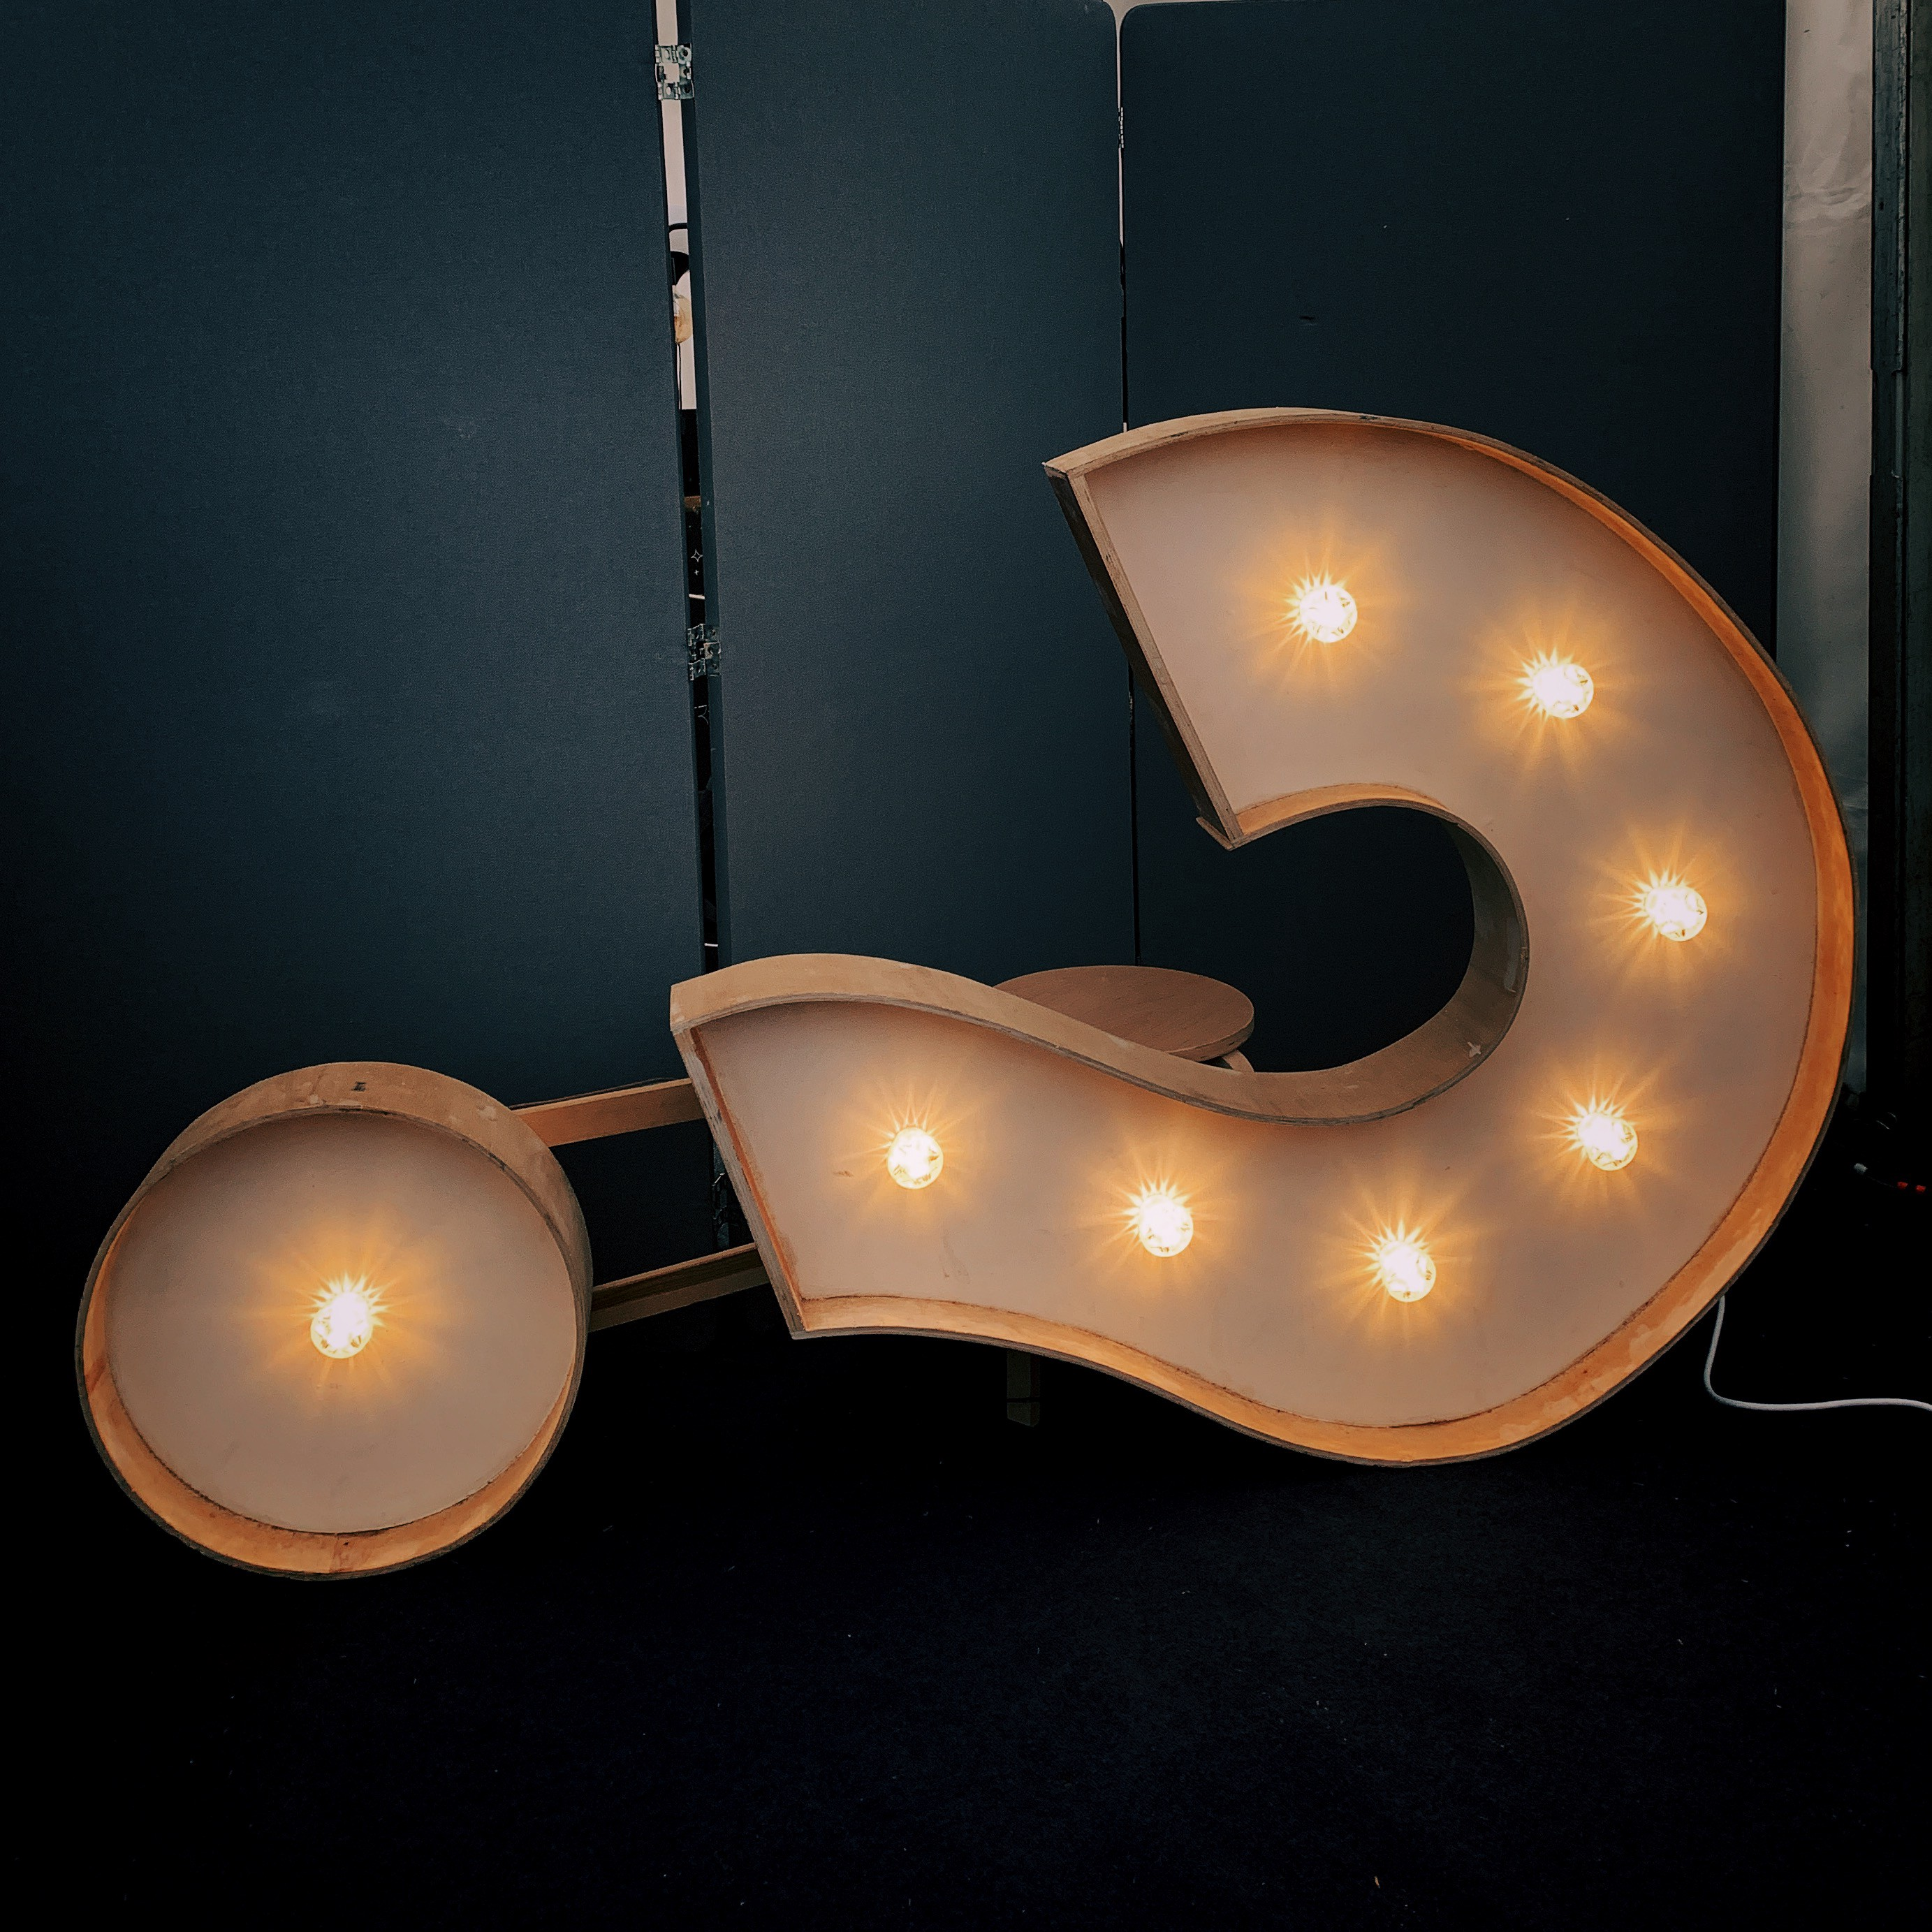 An image of a question mark